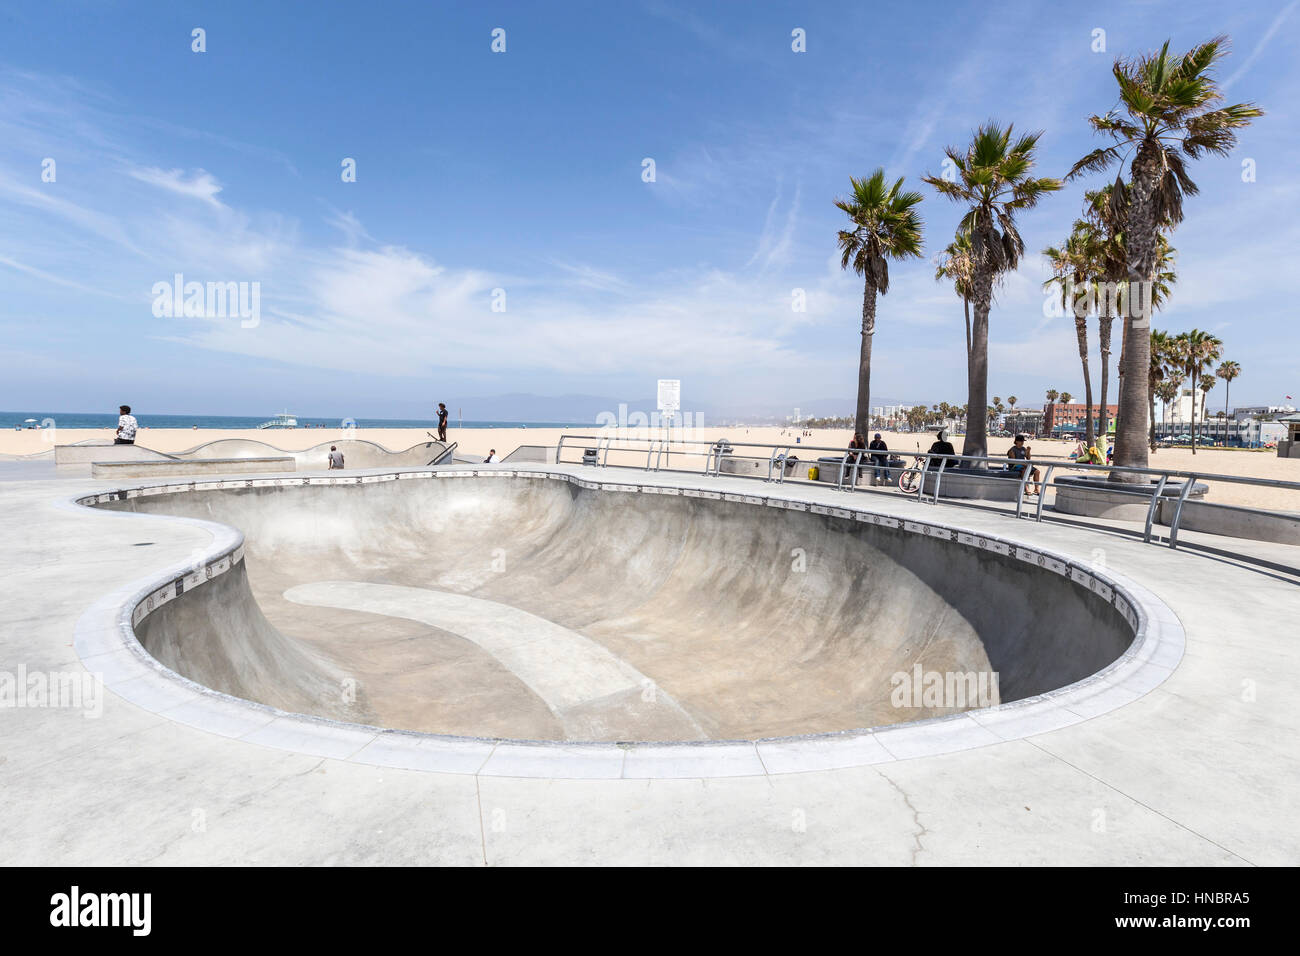 Editorial view of a concrete bowl at Los Angeles's ocean front Venice Beach skate board park. - Stock Image